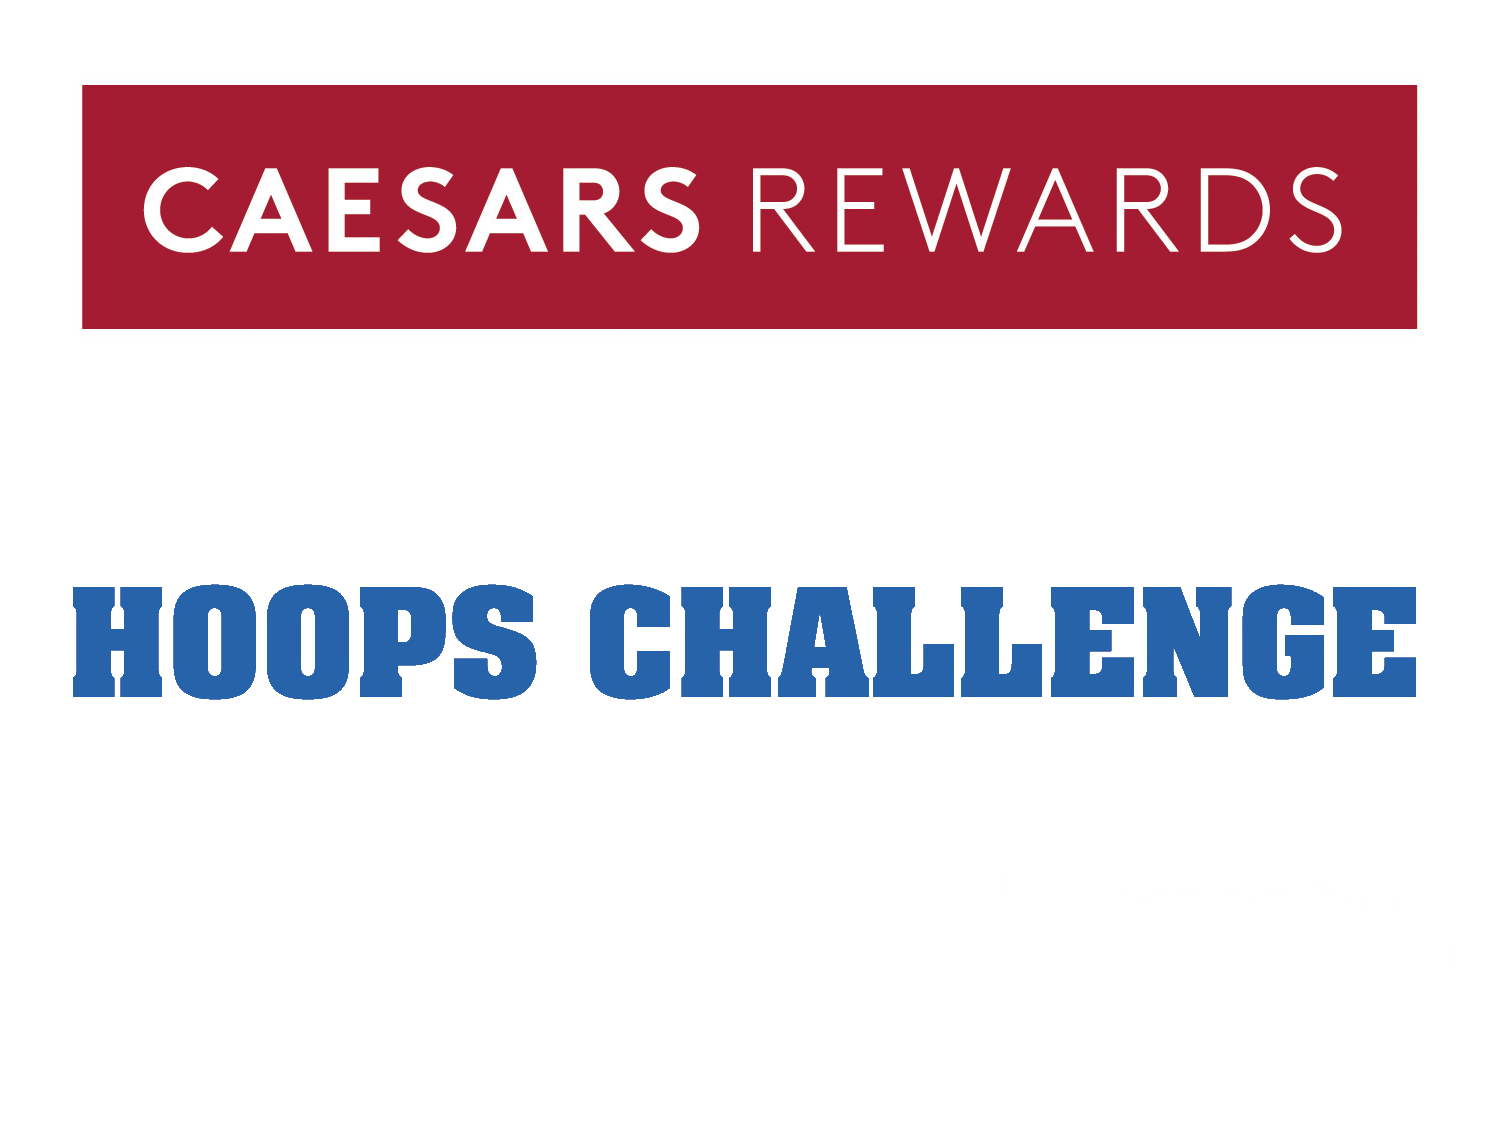 Caesars Rewards $1 Million Hoops Challenge